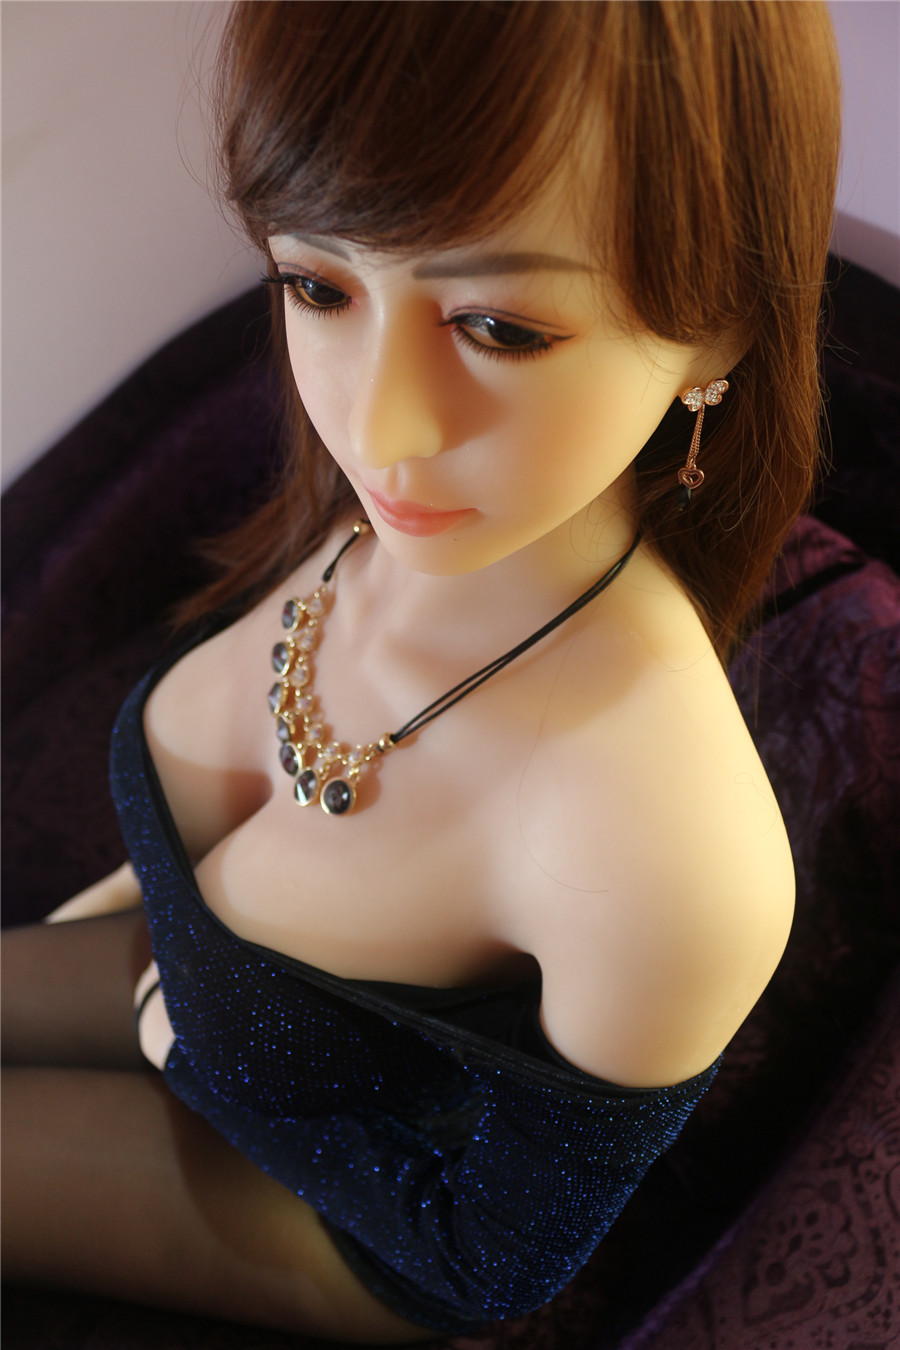 Pinklover 158cm Japanese full silicone realistic sex doll for men oral/vagina/anal,Lifelike big breast female sexy doll for men